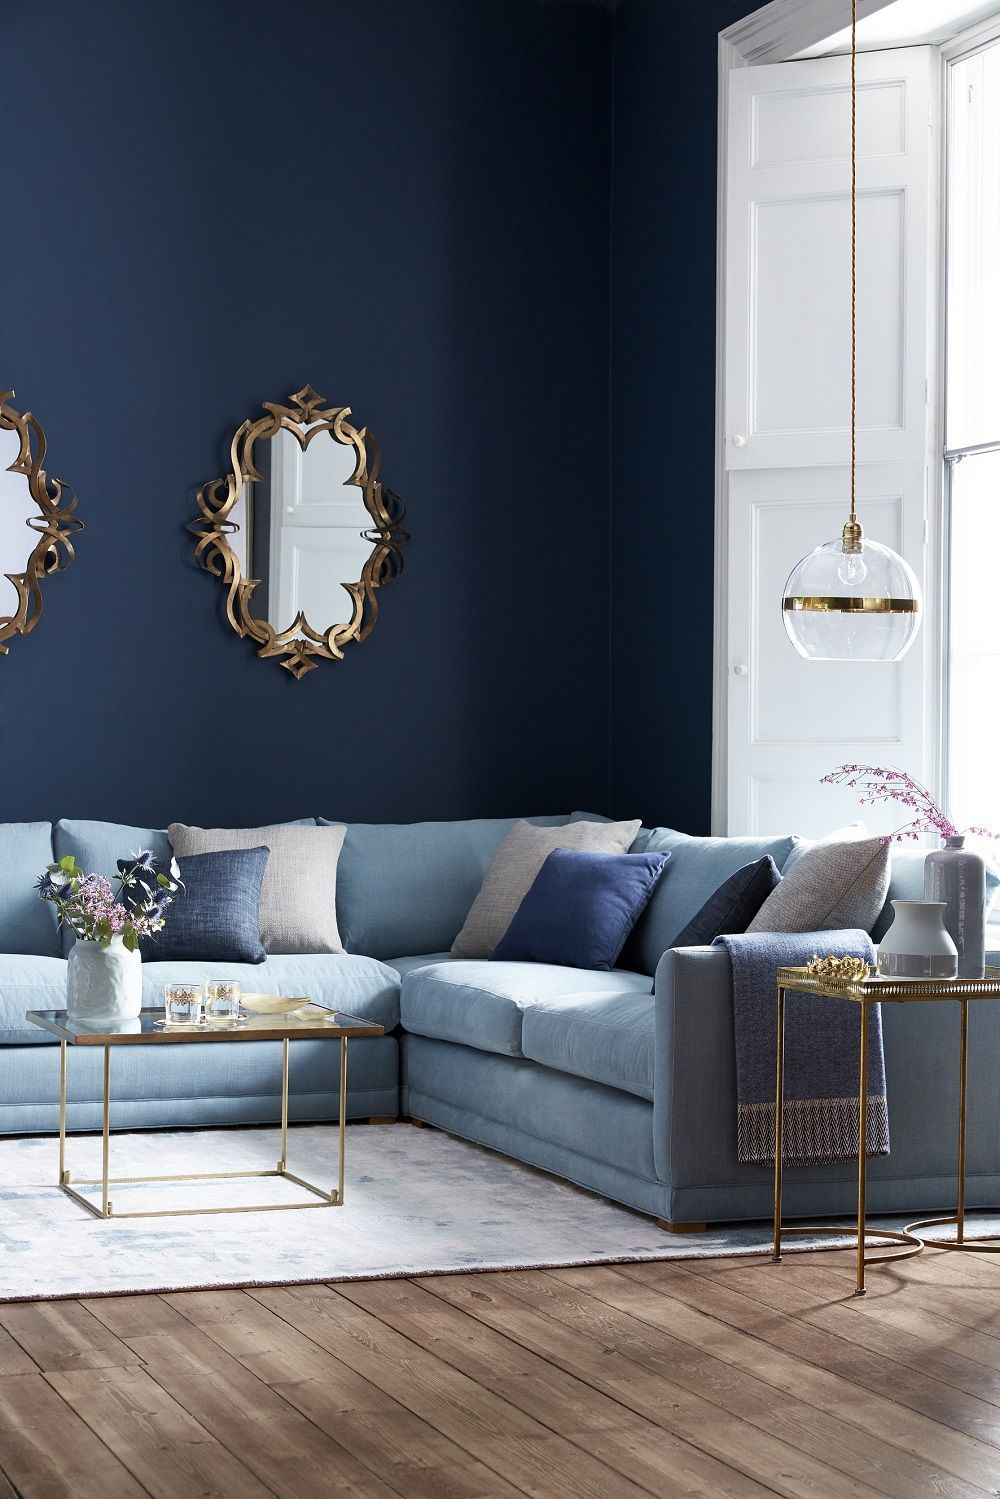 Living Room Ideas Blue Couch Blue Sofas Living Room Blue Living Room Decor Blue Sofa Living